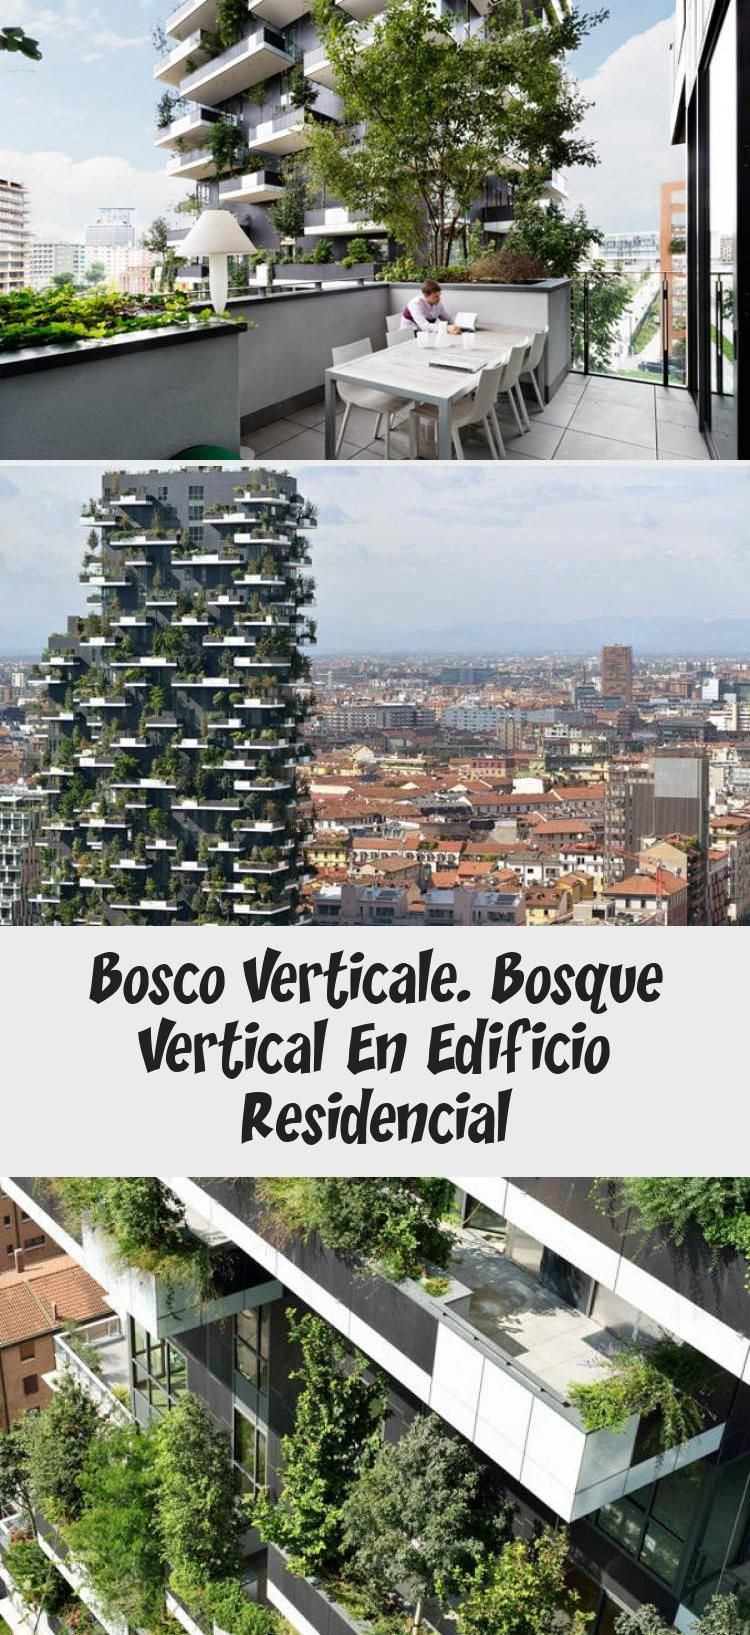 Bosco Verticale Bosque Vertical En Edificio Residencial Sustainable Architecture Architecture Outdoor Decor